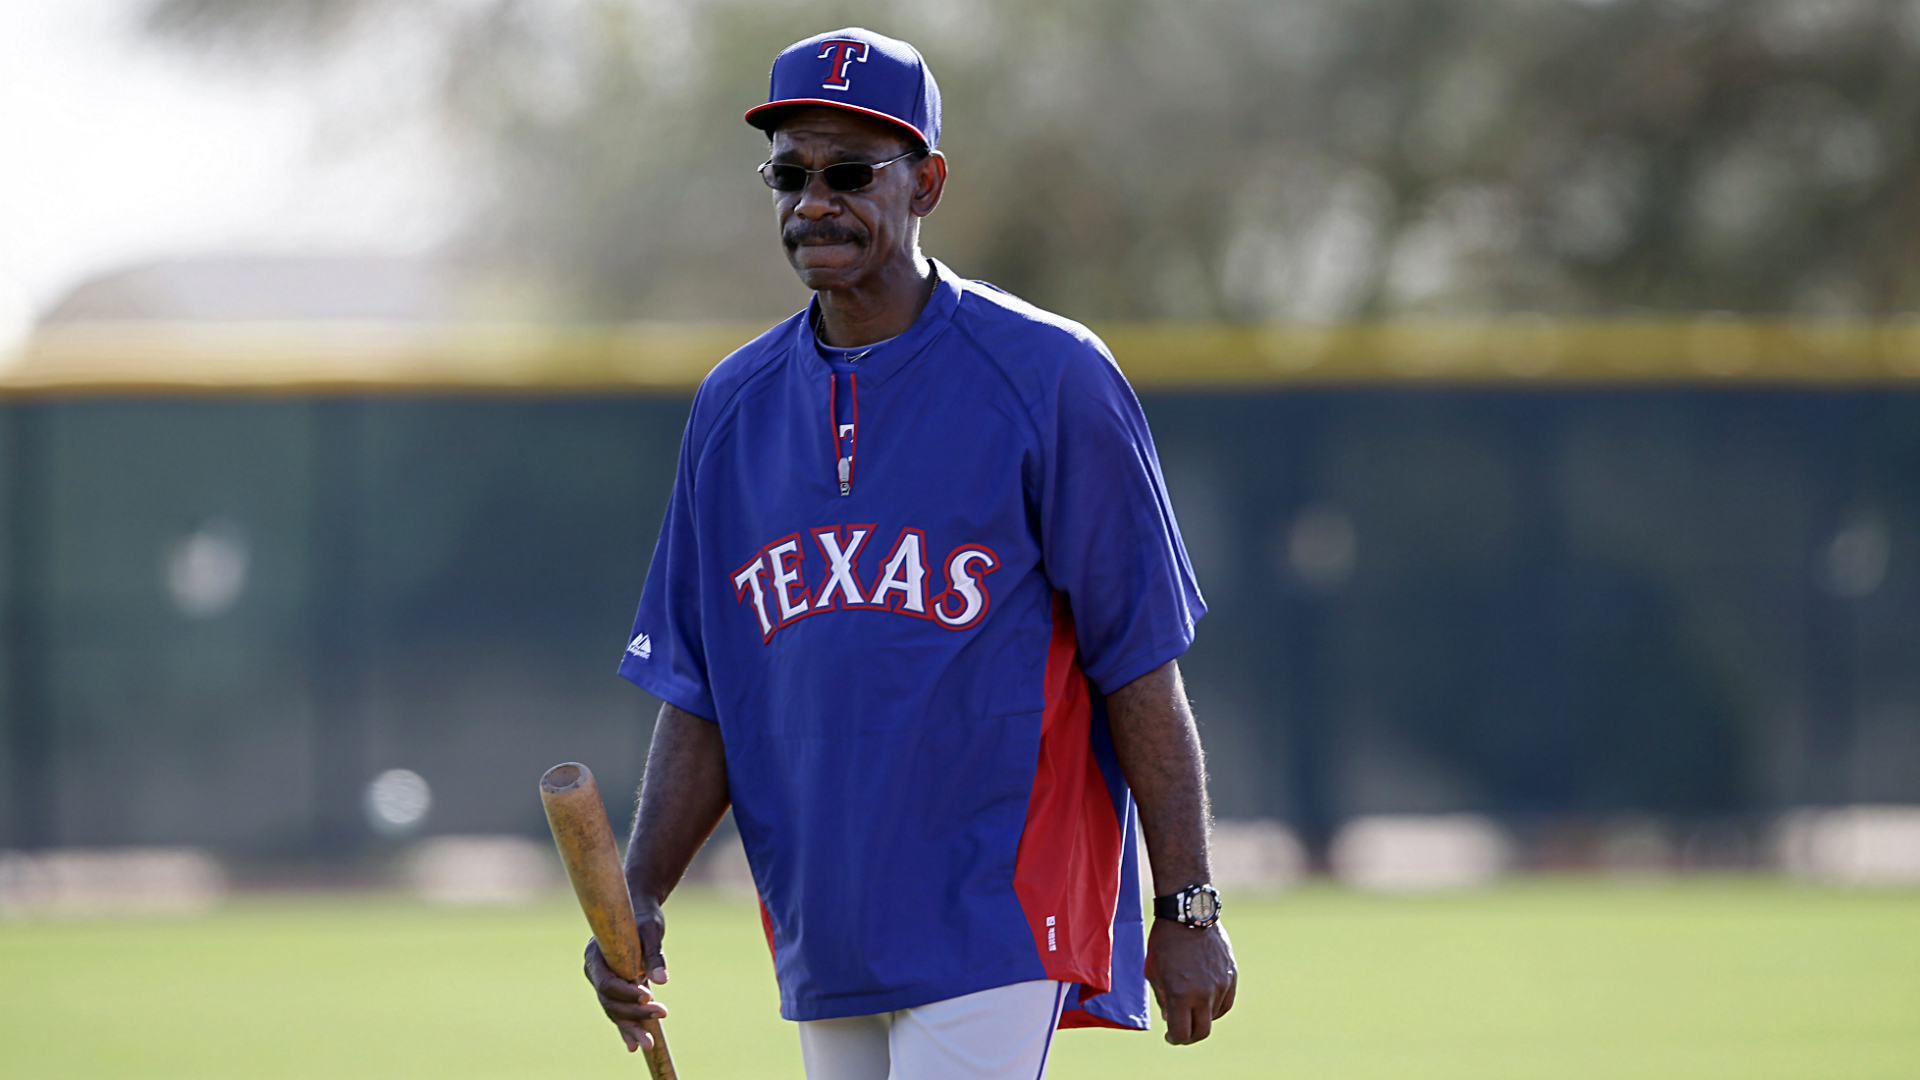 ron-washington-02-18-14-AP-FTR